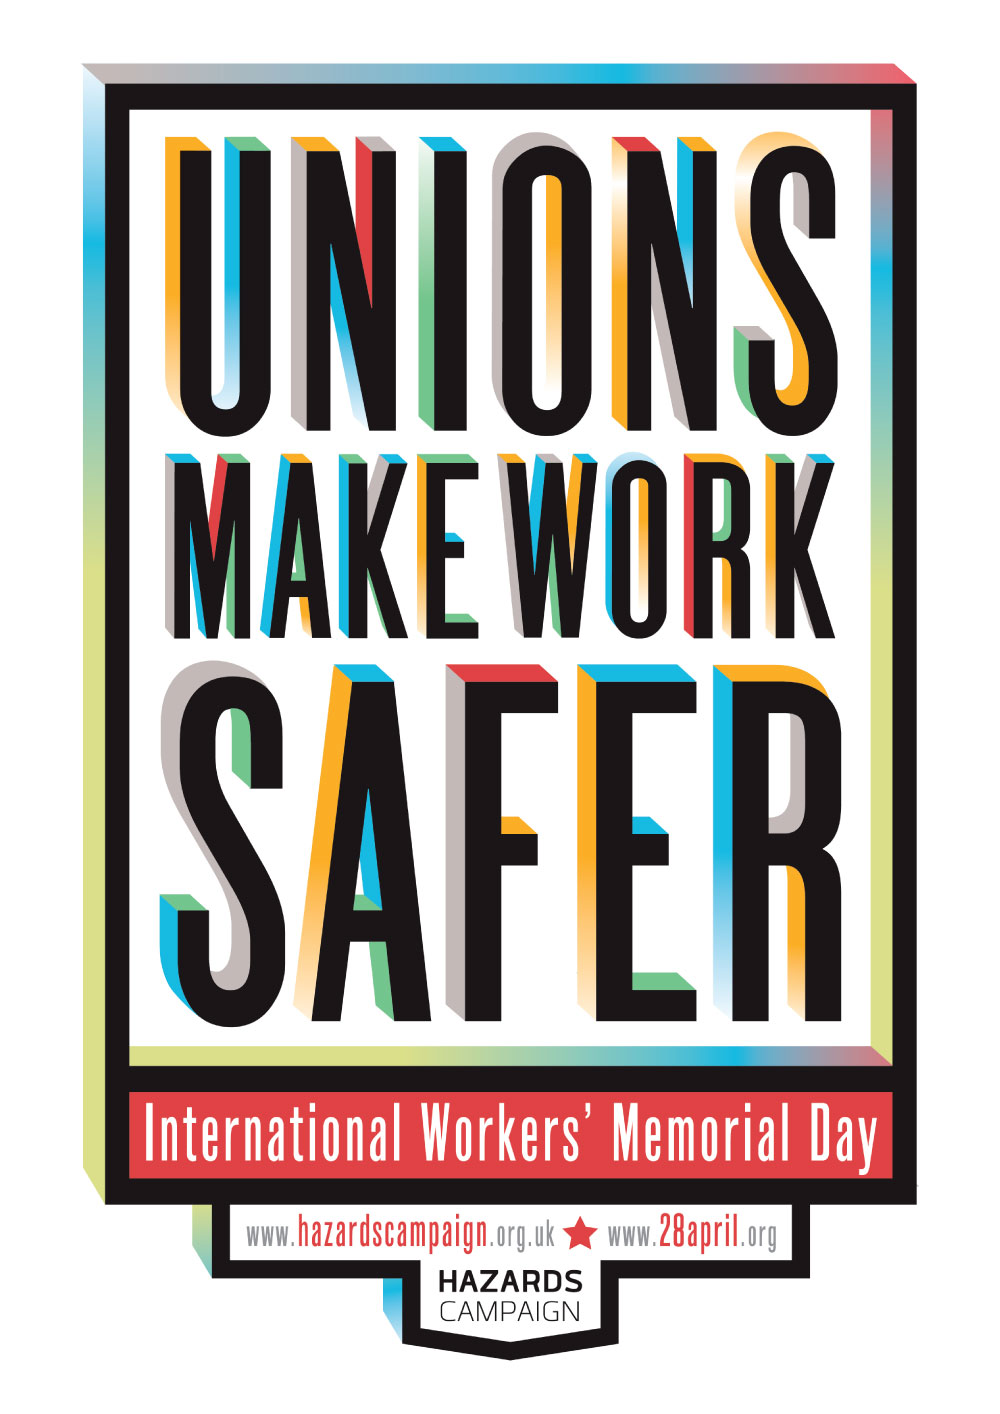 Workers Memorial Day Hazards Campaign